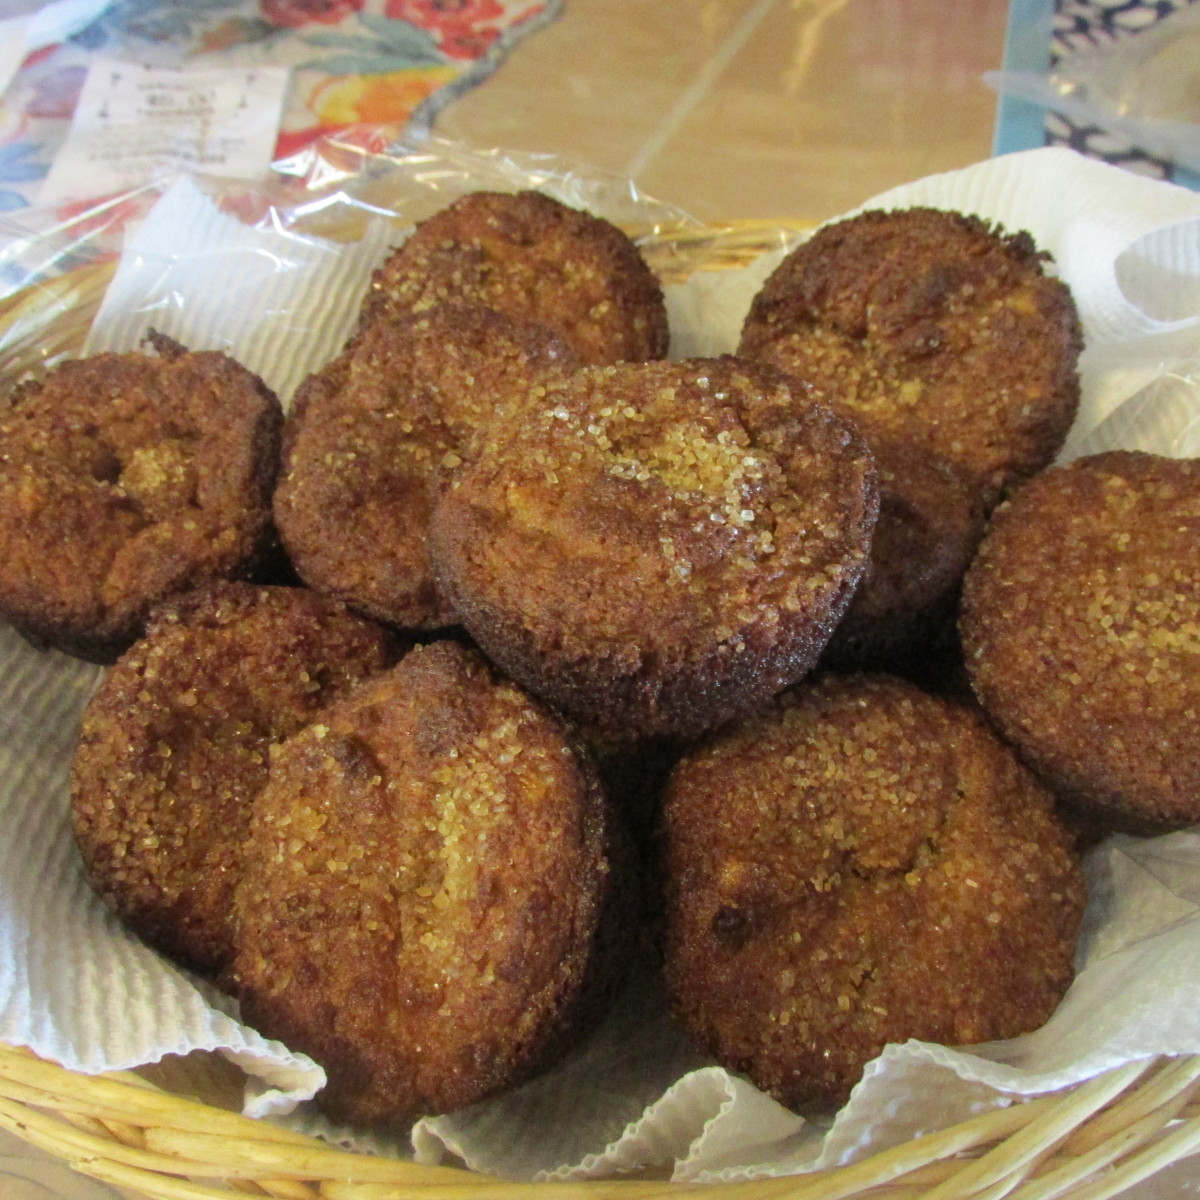 Low-Carb, Gluten-Free Apricot Muffins With Almond Flour